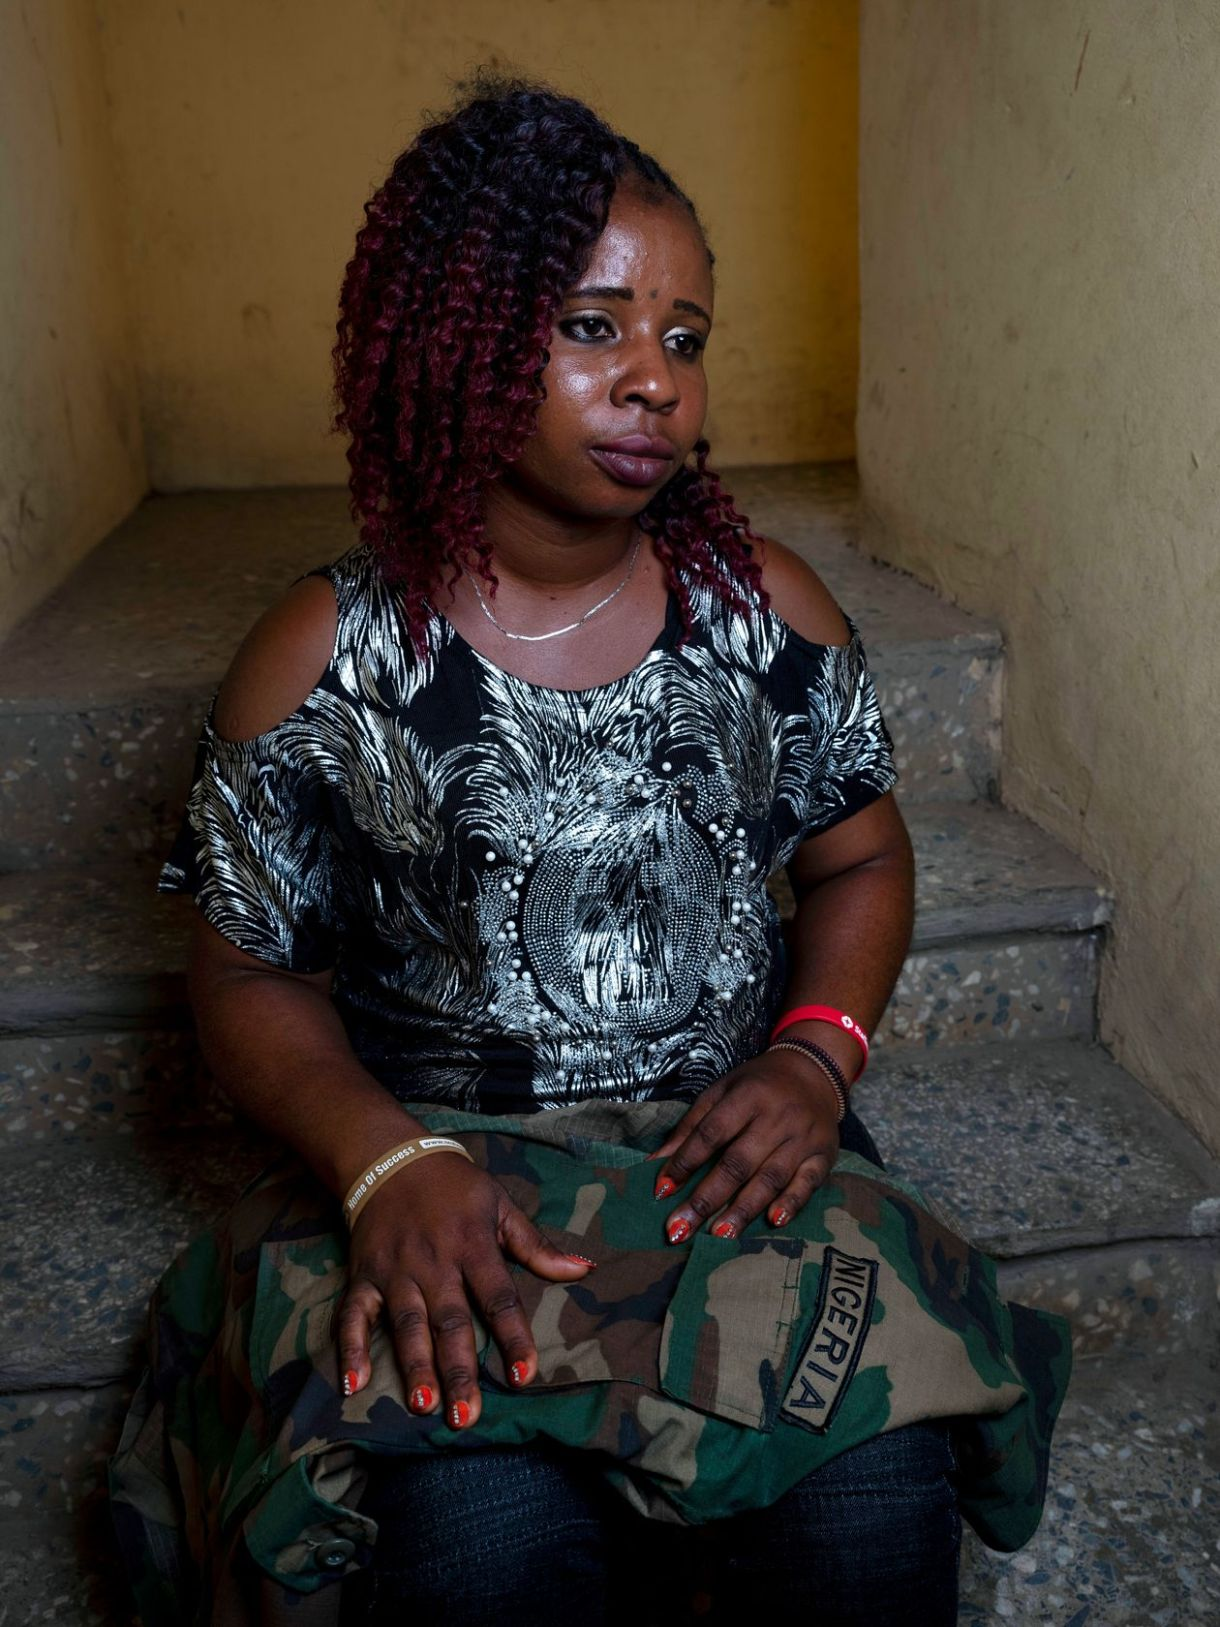 Mercy Tamuno in Abuja, Nigeria, with her husband's uniform. Officials told her he was killed in an insurgent attack on an outpost in the country's northeast